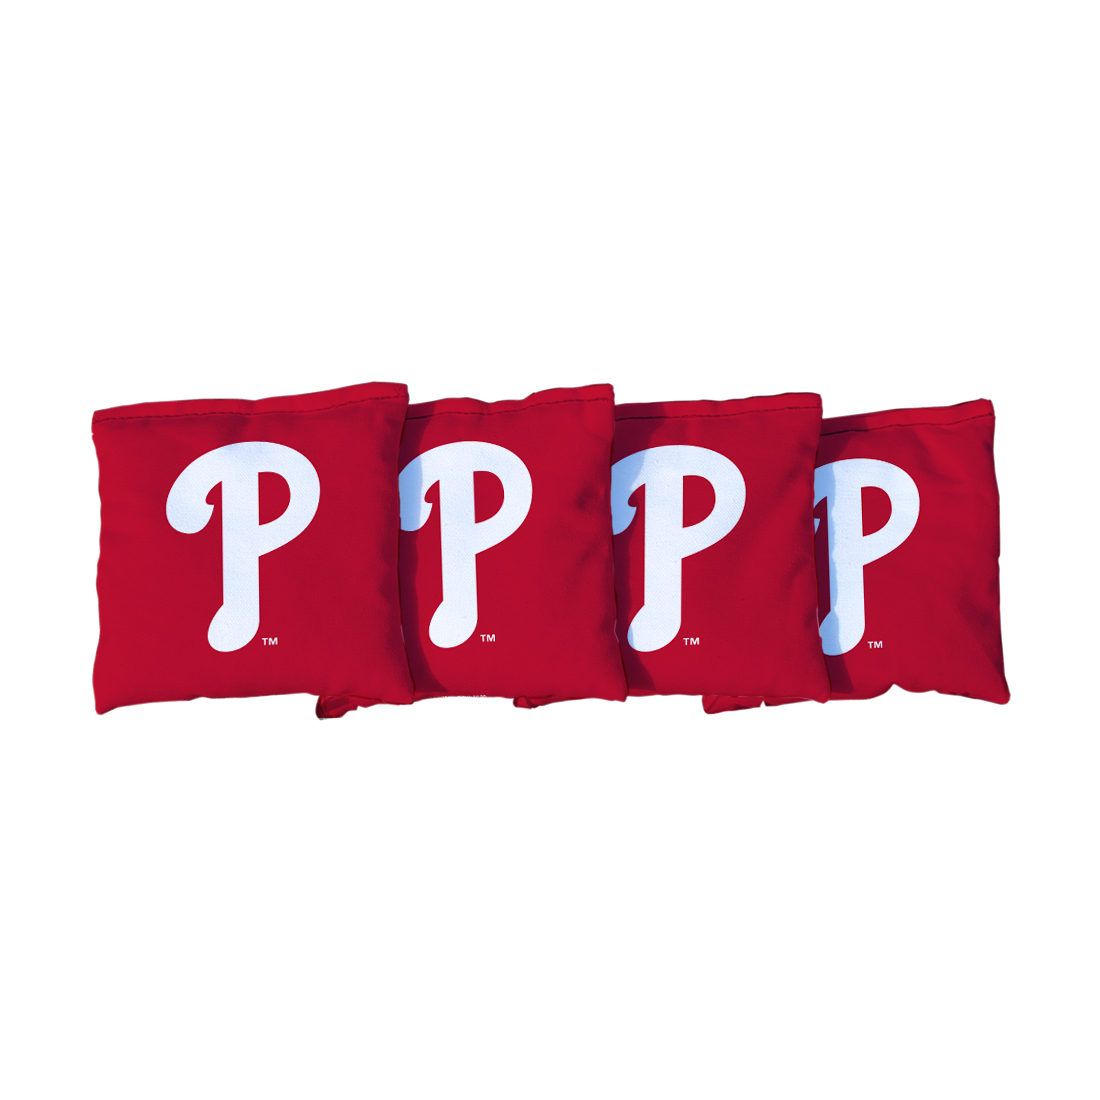 4 Philadelphia Phillies Red Cornhole Bags